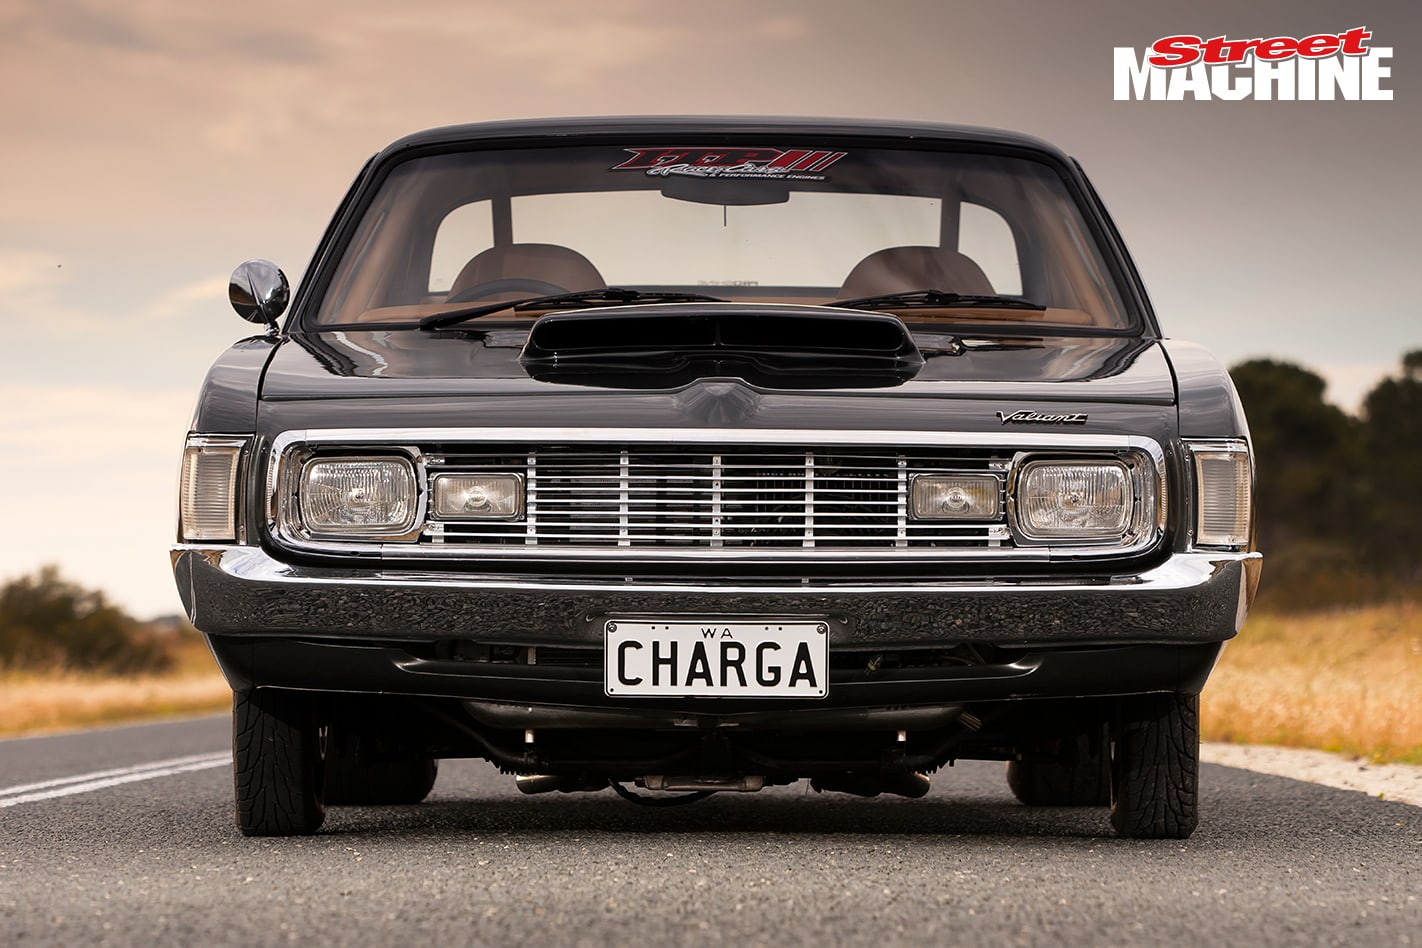 VH Valiant Charger 8 Nw